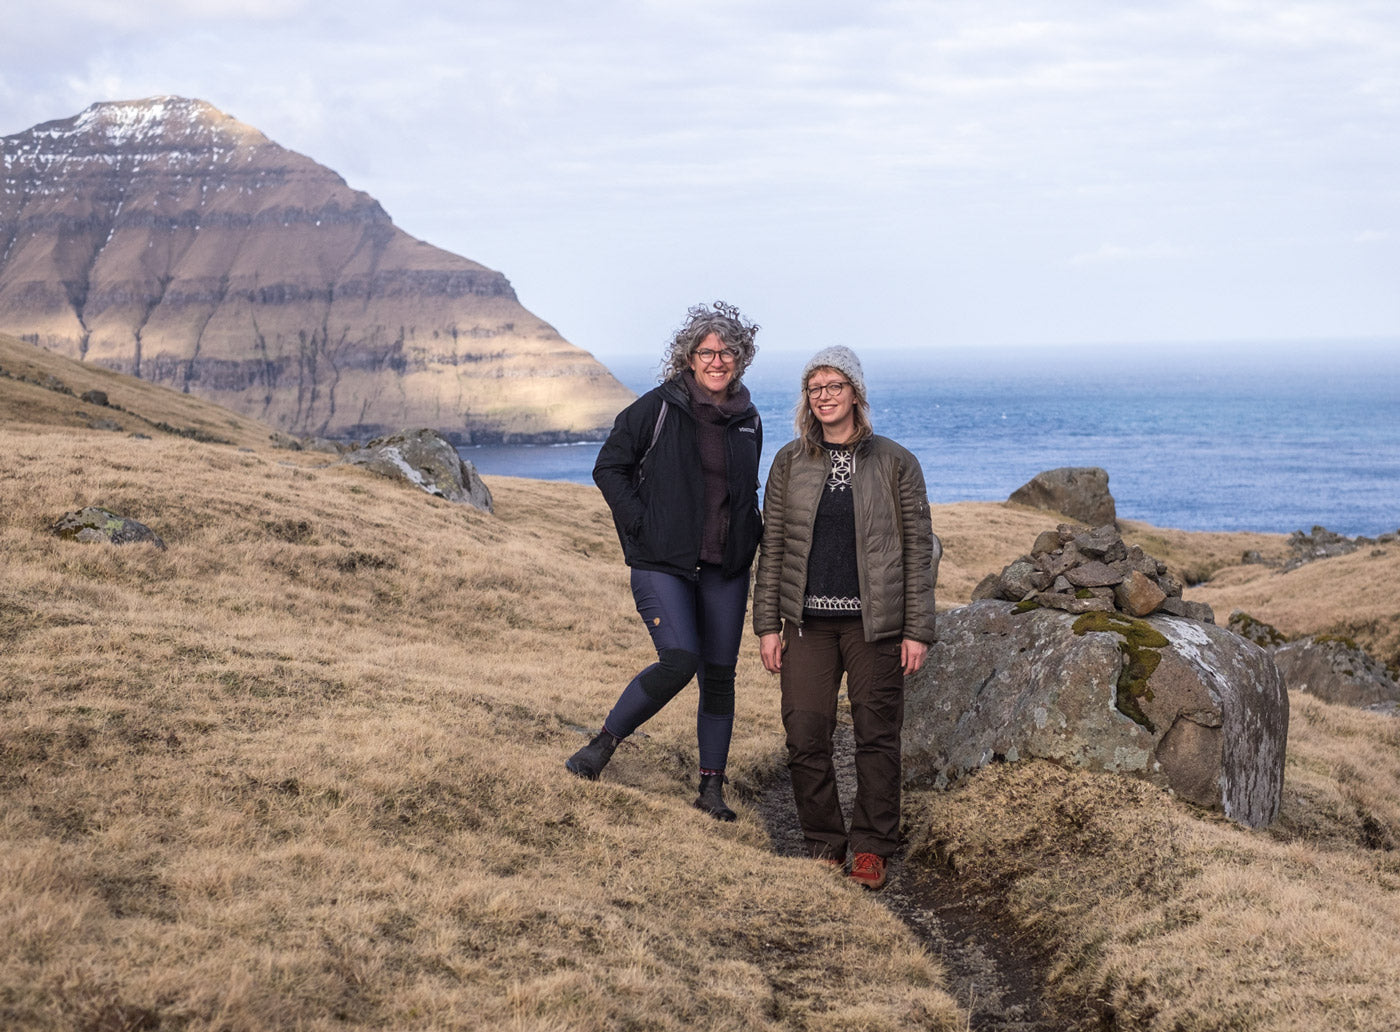 Jaime and Amber hiking in Faroe